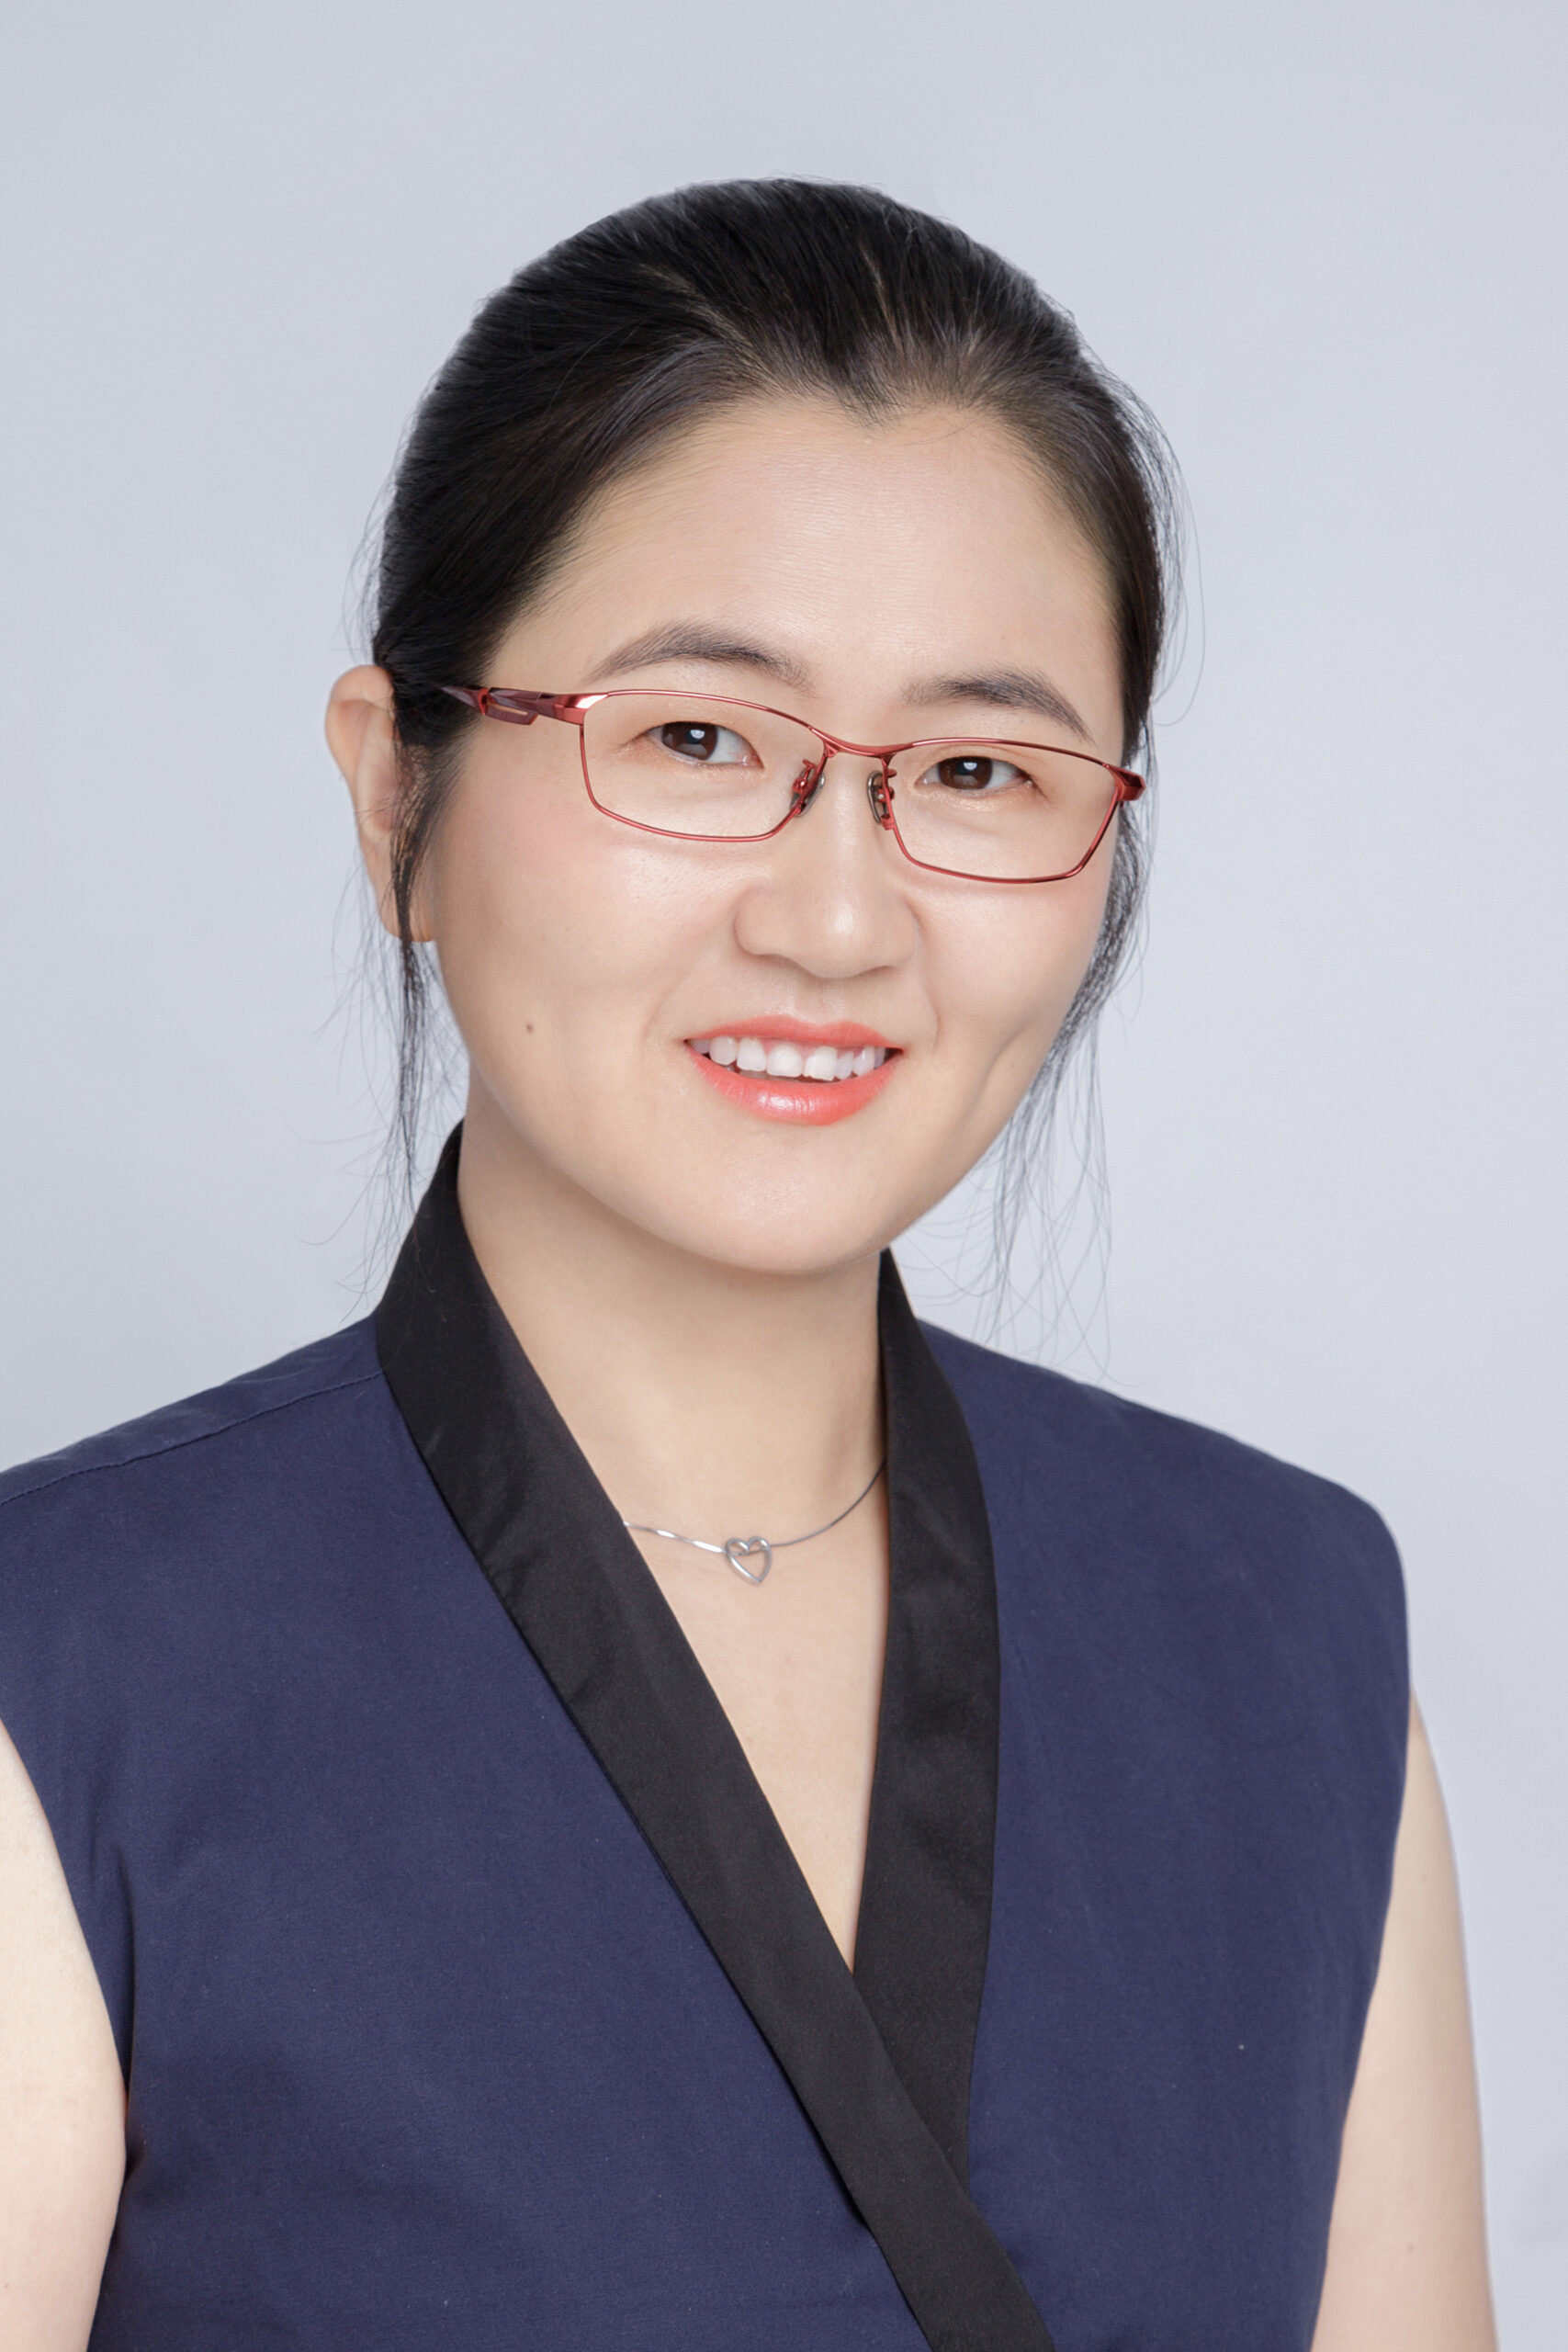 Yun Luo